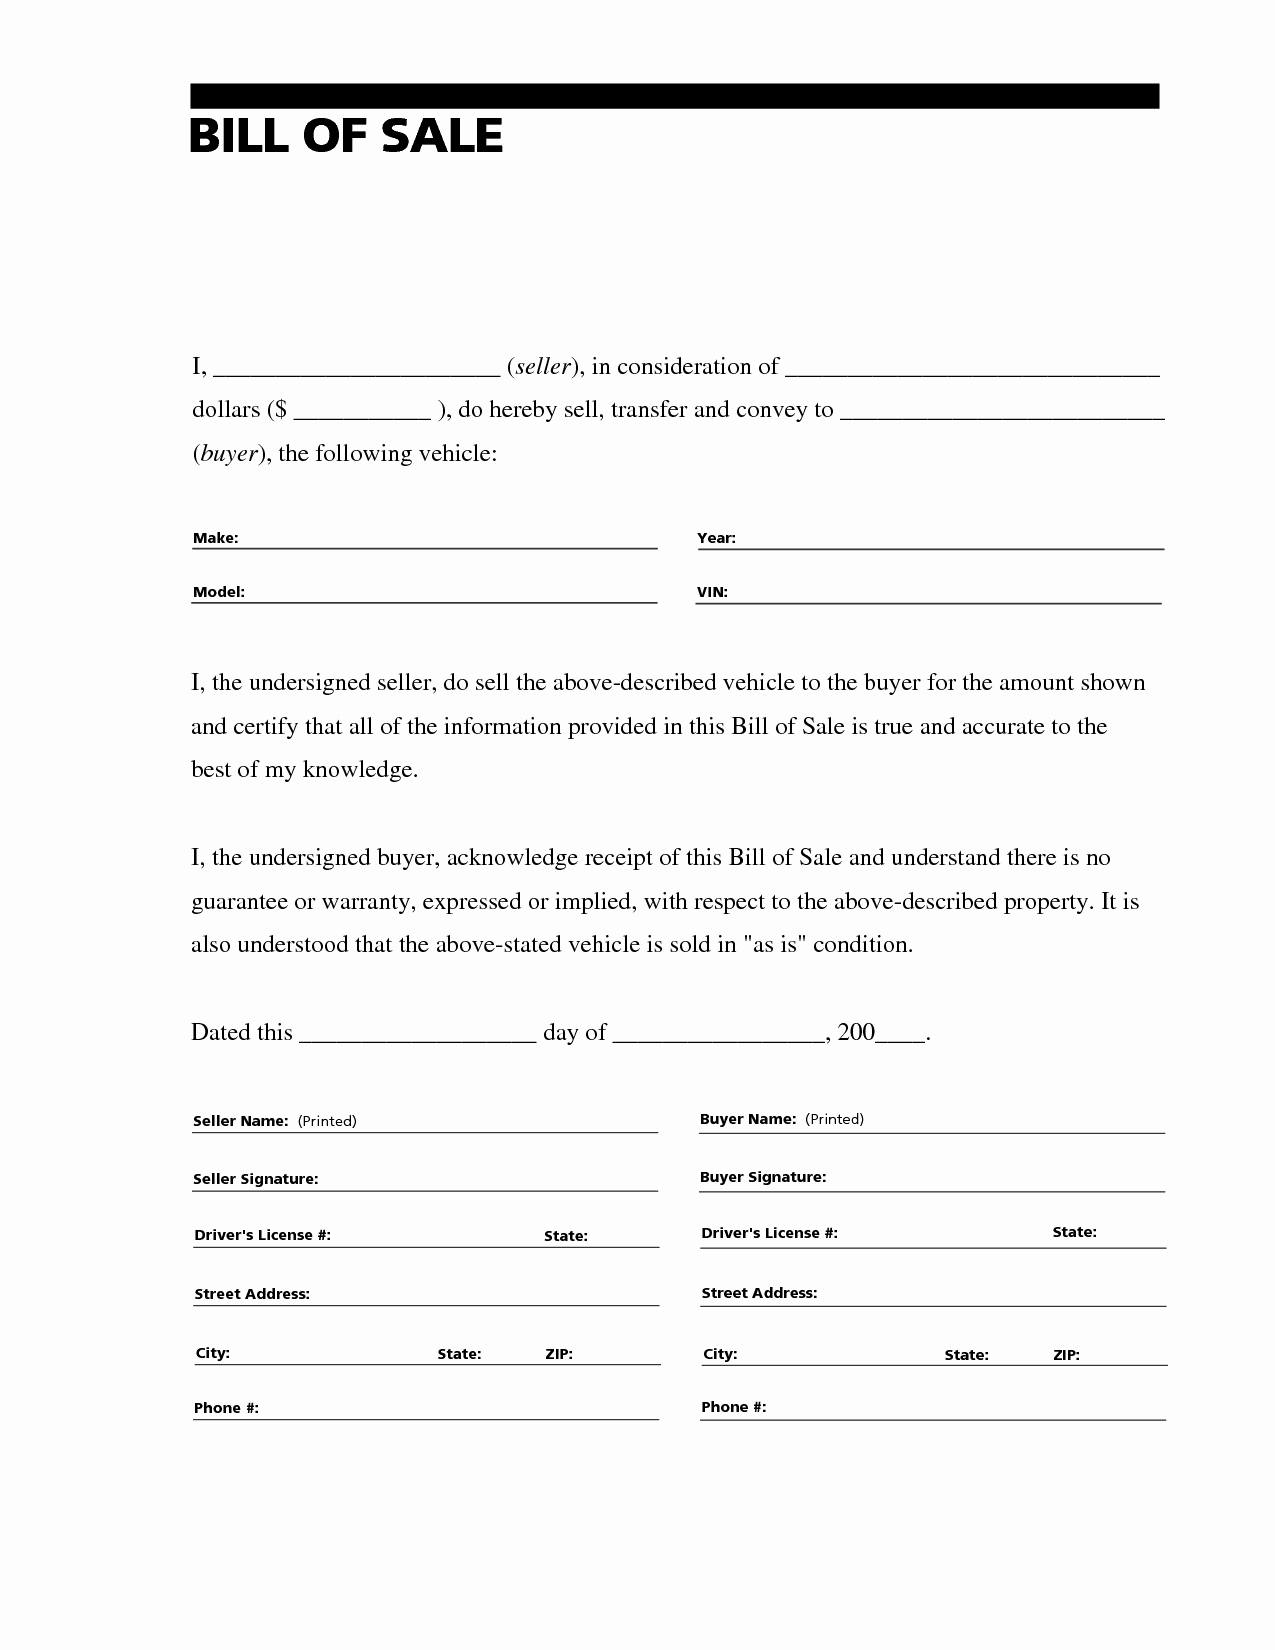 A Car Bill Of Sale Beautiful Free Printable Vehicle Bill Of Sale Template form Generic